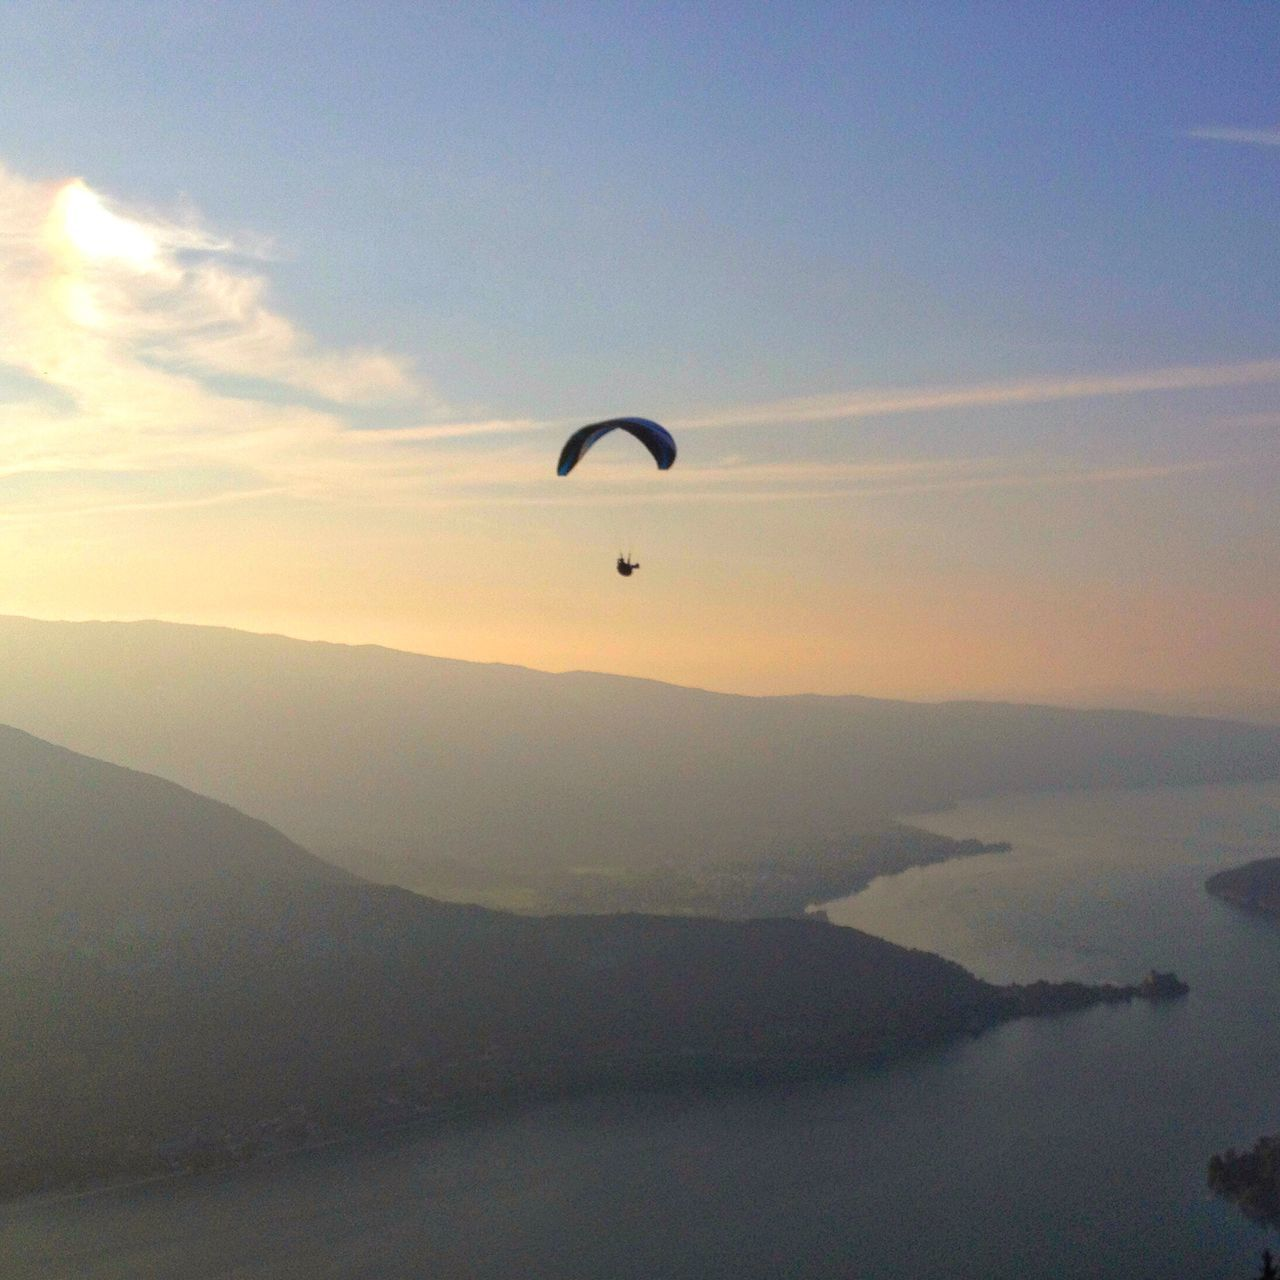 Mountains IPhoneography Iphonephotography France Sunset Sunset_collection Sunset Silhouettes Sunset #sun #clouds #skylovers #sky #nature #beautifulinnature #naturalbeauty #photography #landscape Parachute Parascending